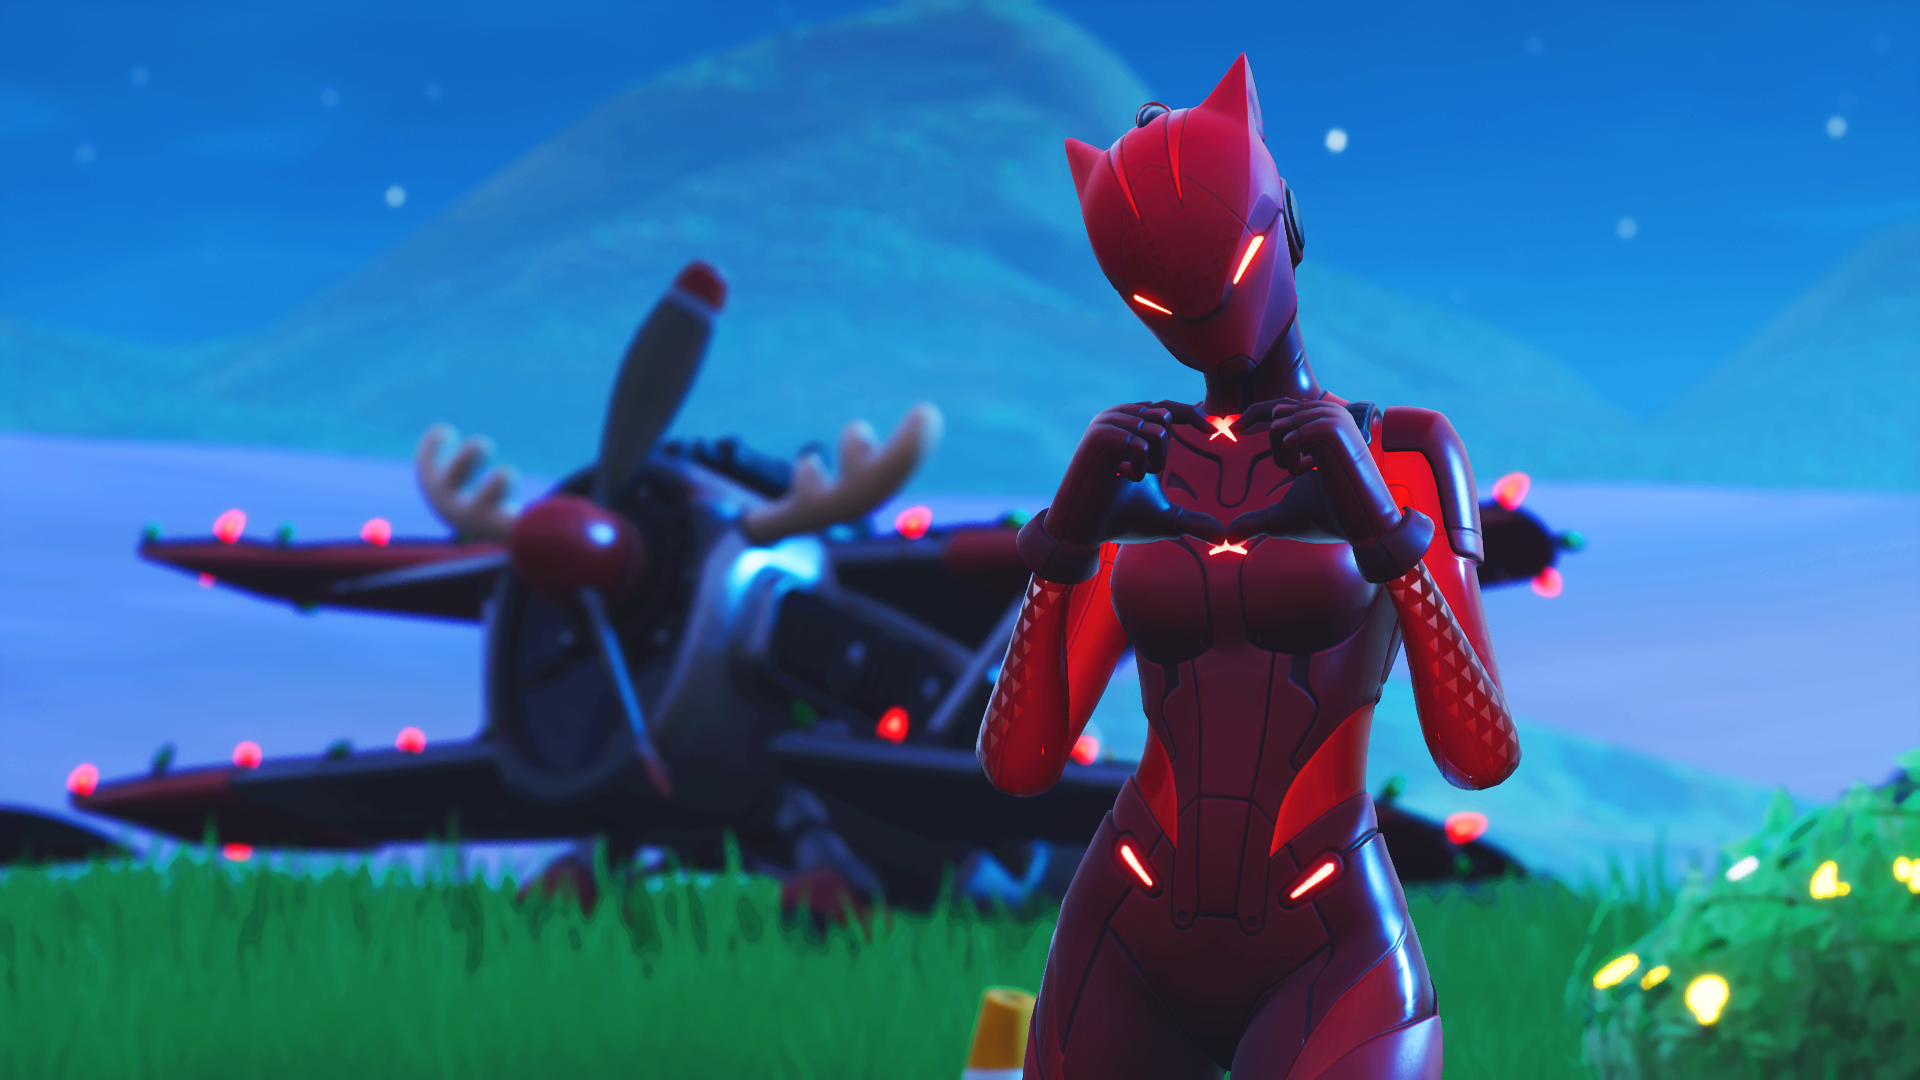 Lynx Fortnite Wallpapers Top Free Lynx Fortnite Backgrounds Wallpaperaccess